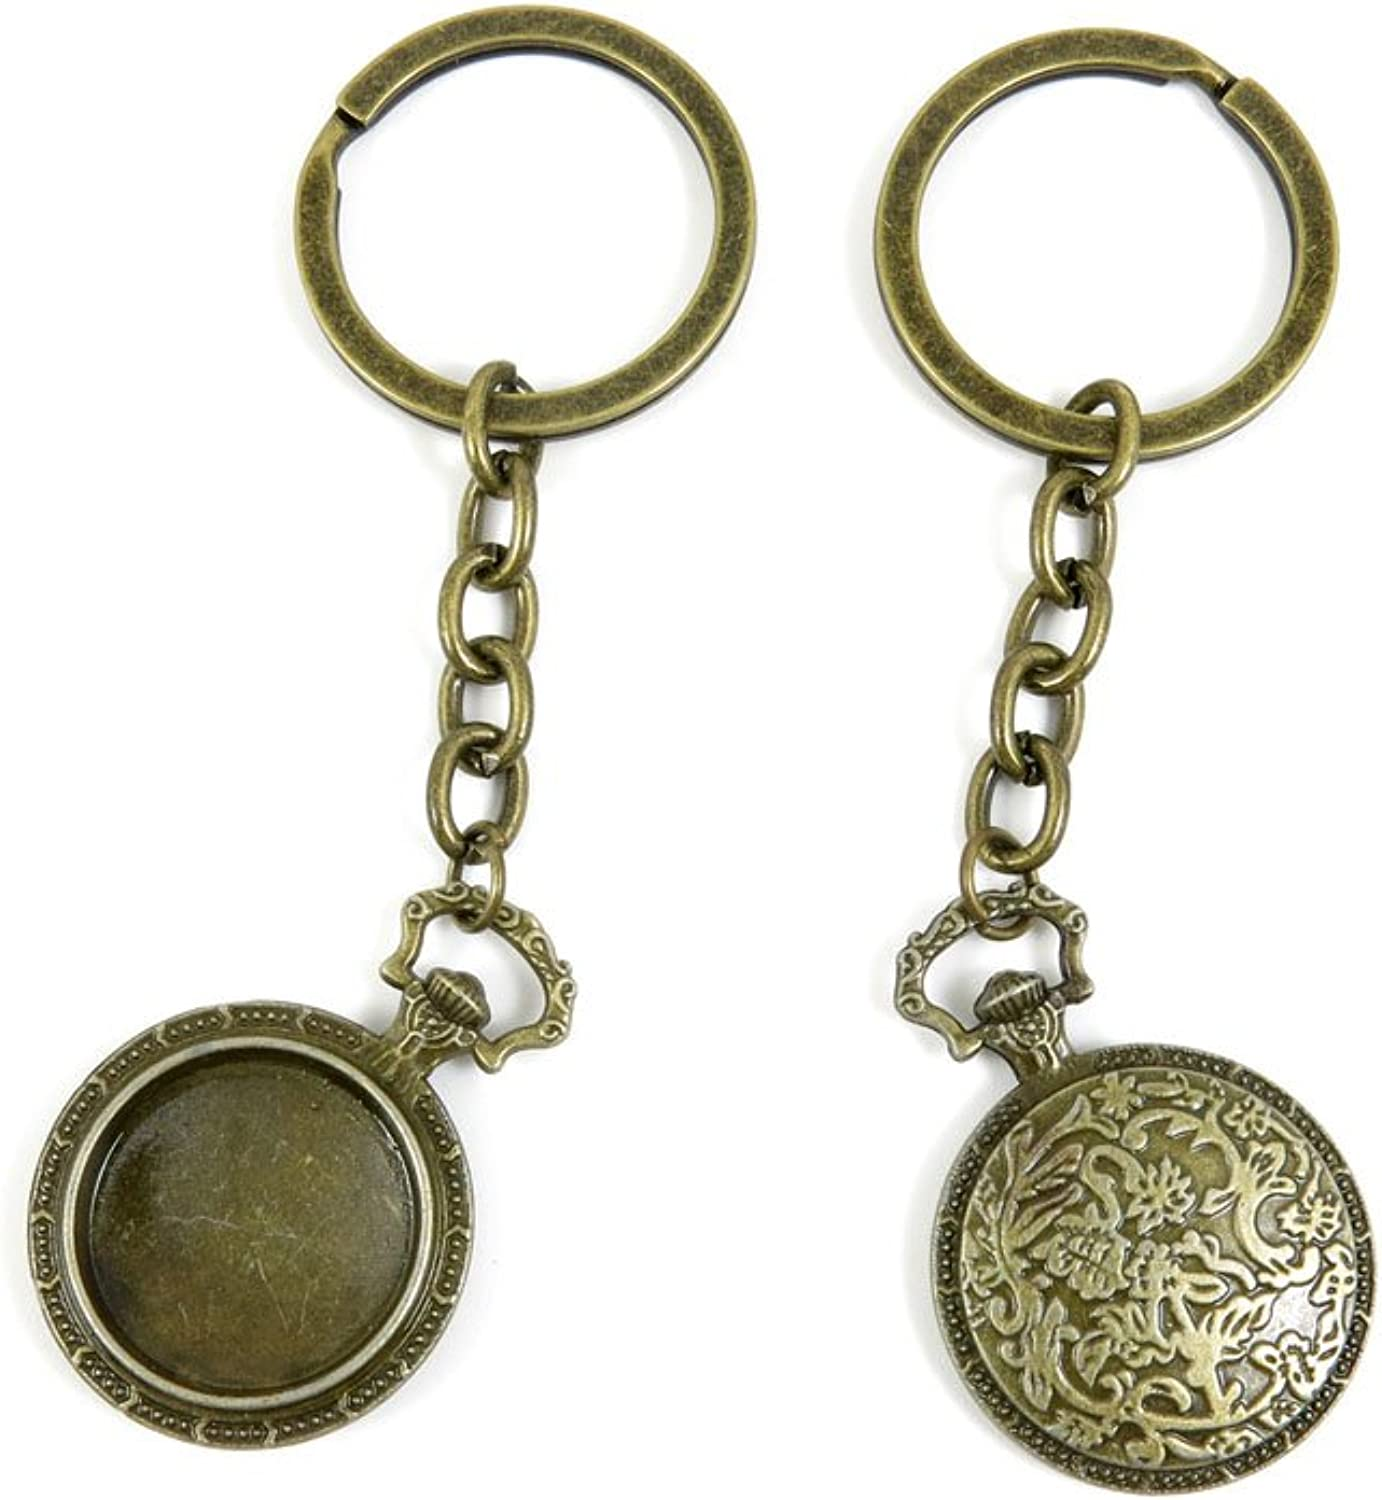 100 PCS Keyrings Keychains Key Ring Chains Tags Jewelry Findings Clasps Buckles Supplies H4EM7 Pocket Watch Cover